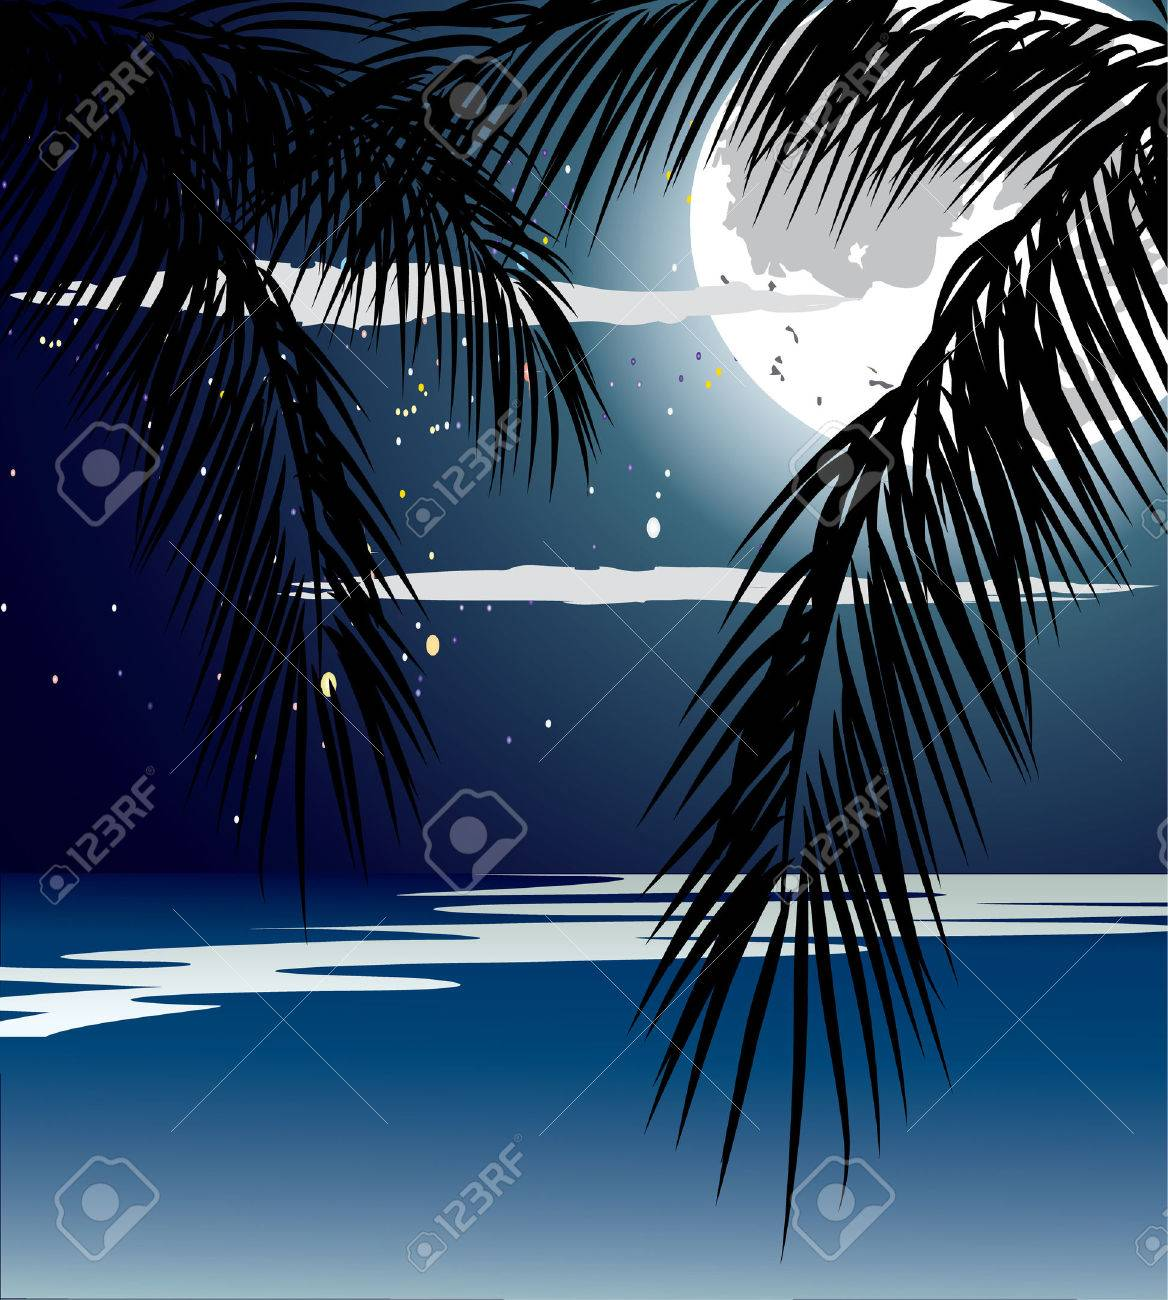 Ocean in the night, full moon and stars. Stock Vector - 7290599